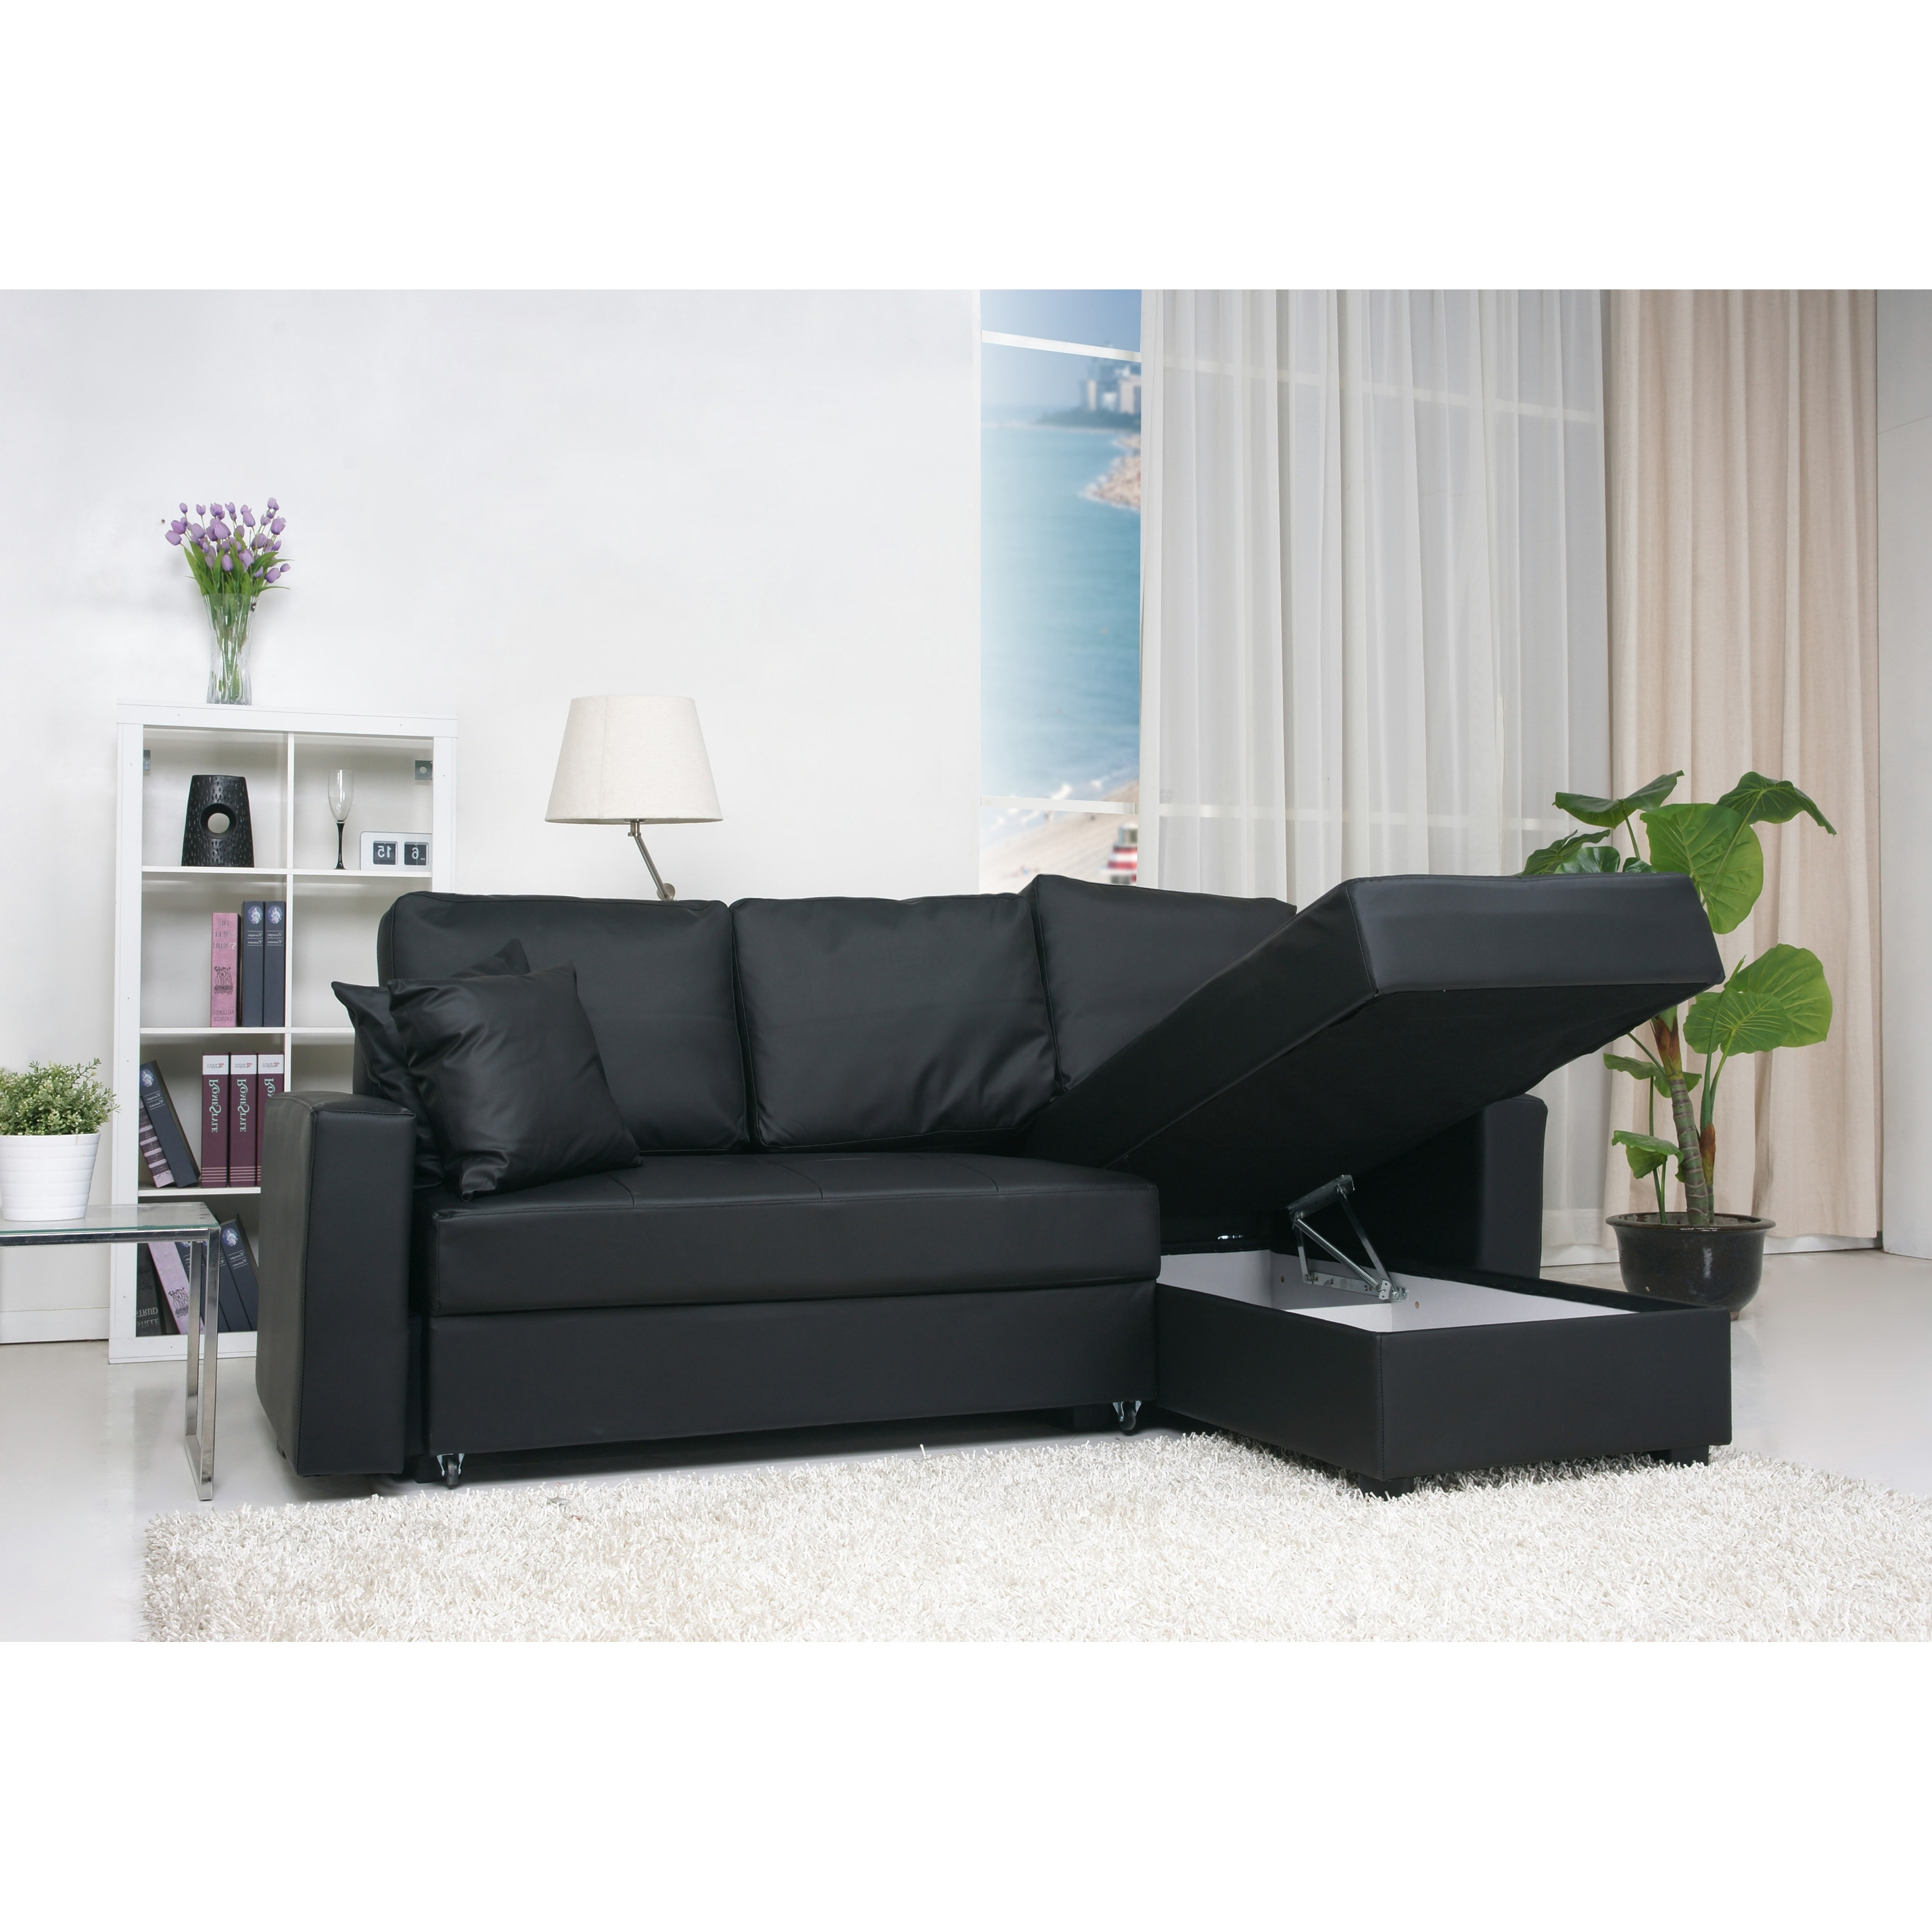 Small Spaces Pertaining To Popular Sectional Sofas At Ebay (View 17 of 20)